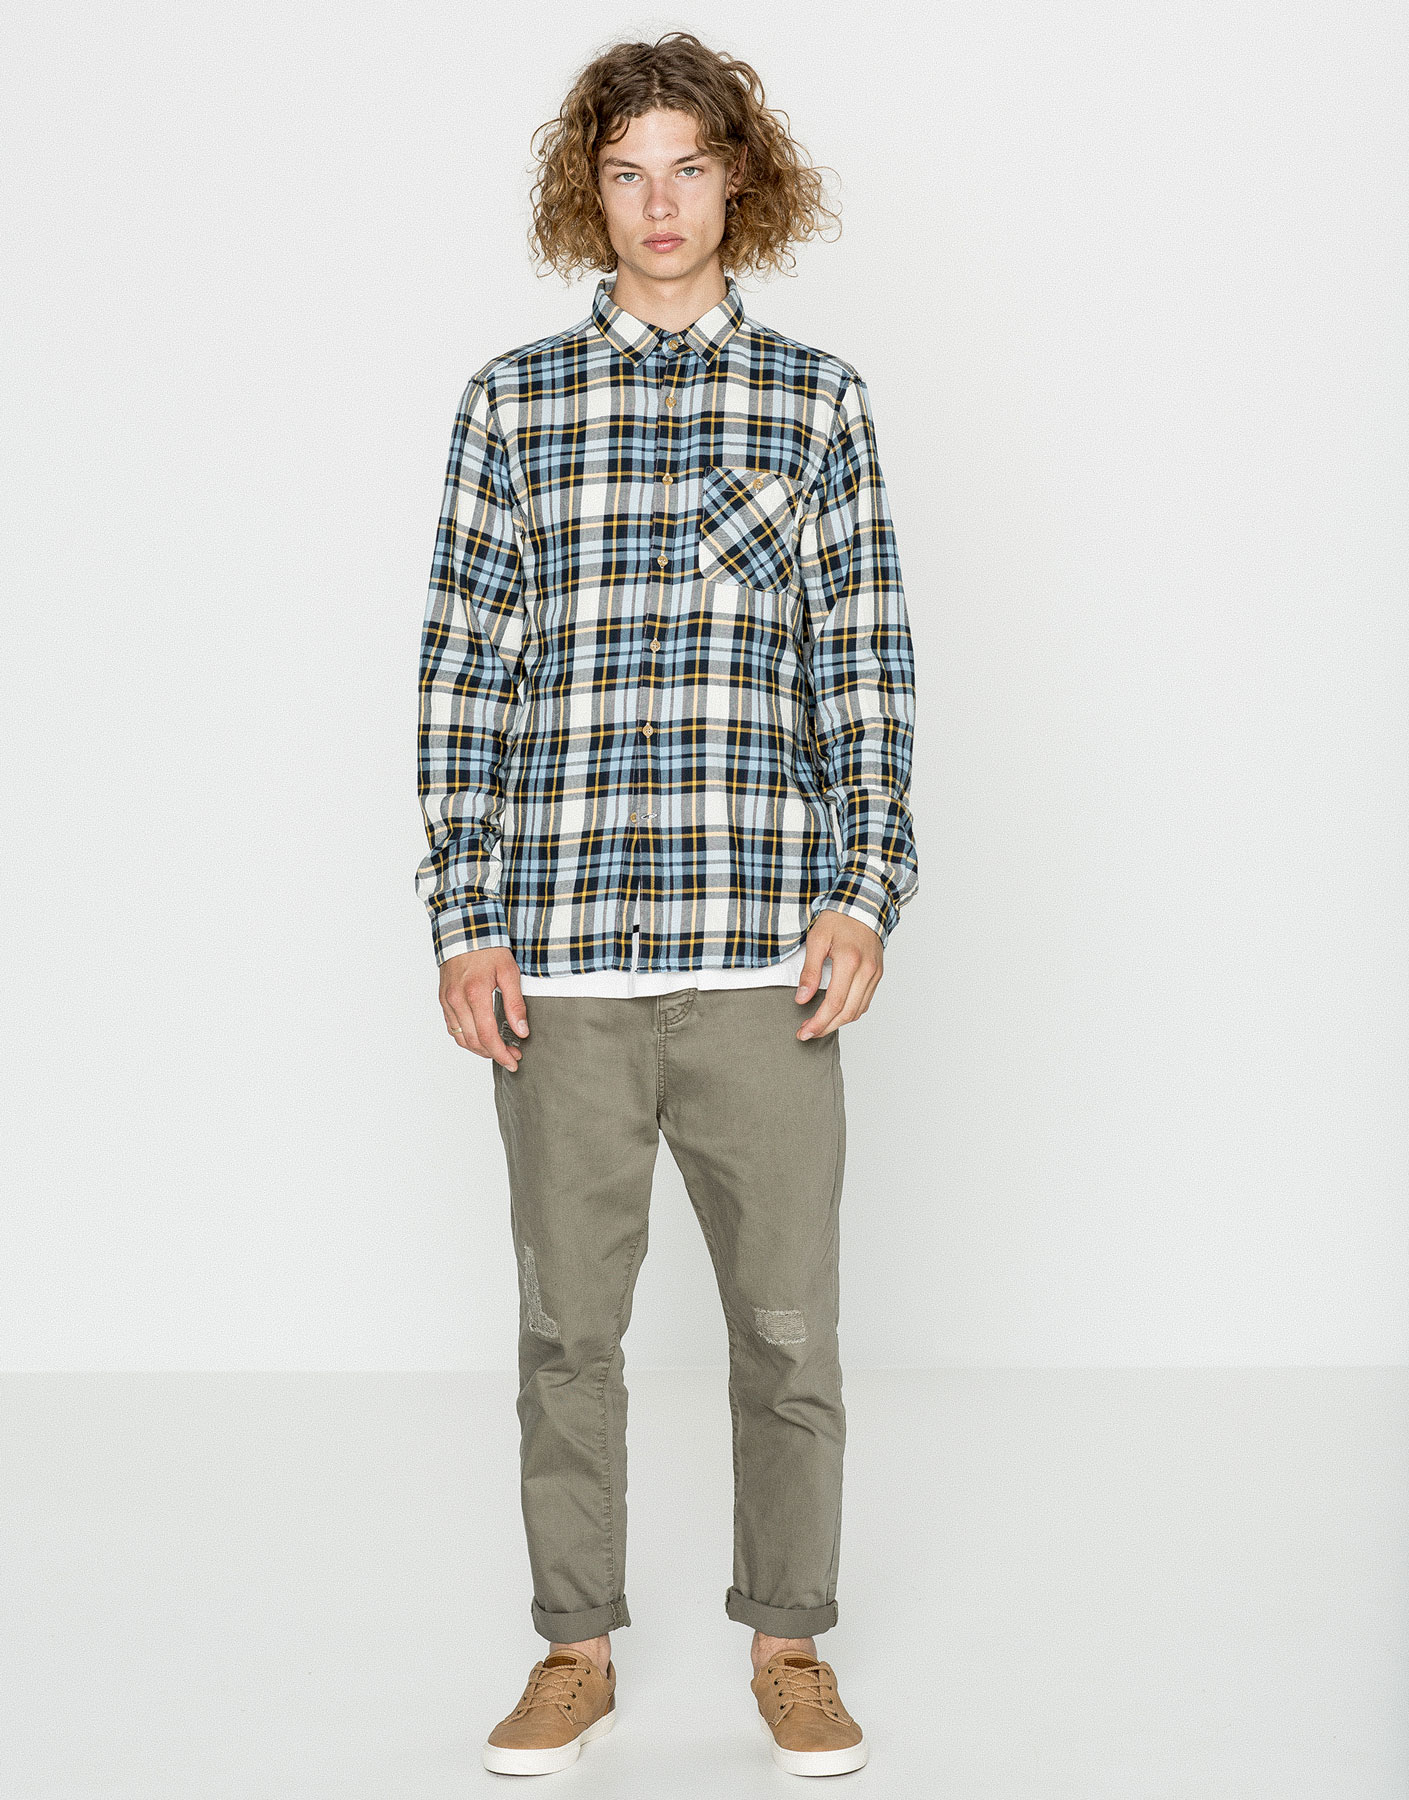 Checked teen shirt with pocket